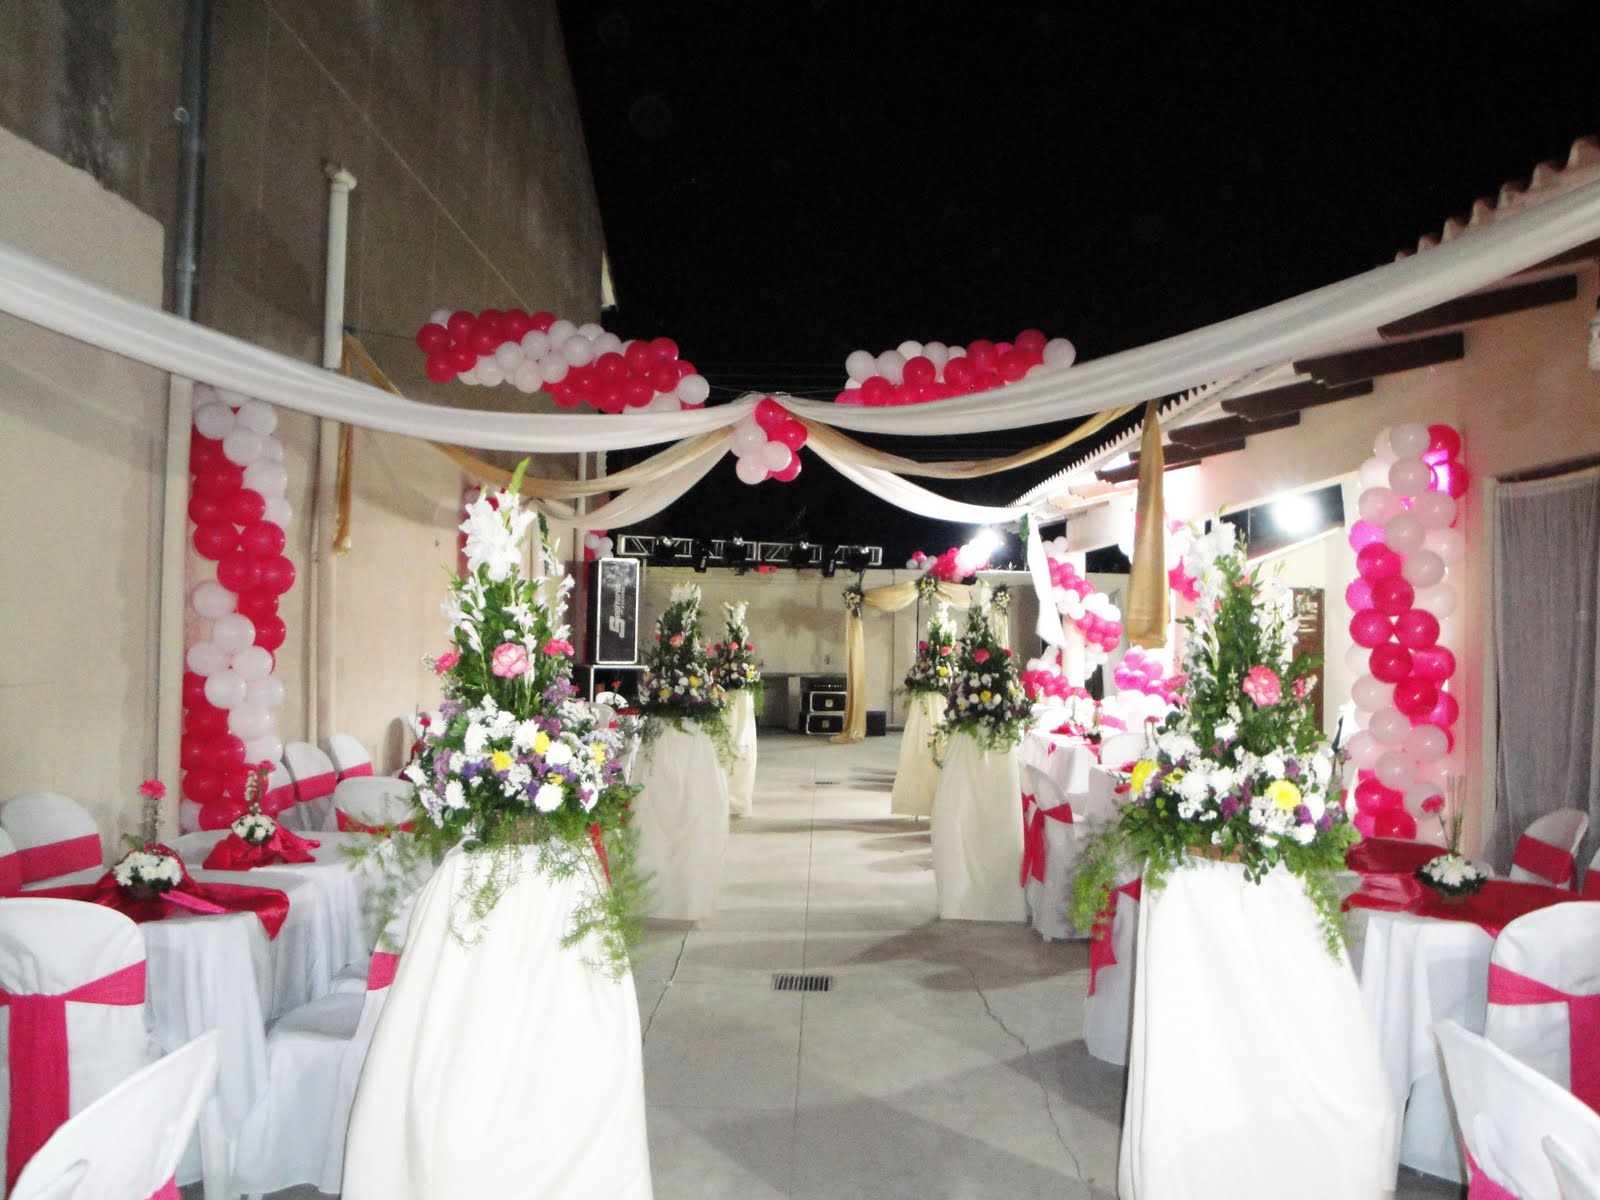 Creatividad eventos sociales decoraci n de 15 a os for Adornos para quinceanera